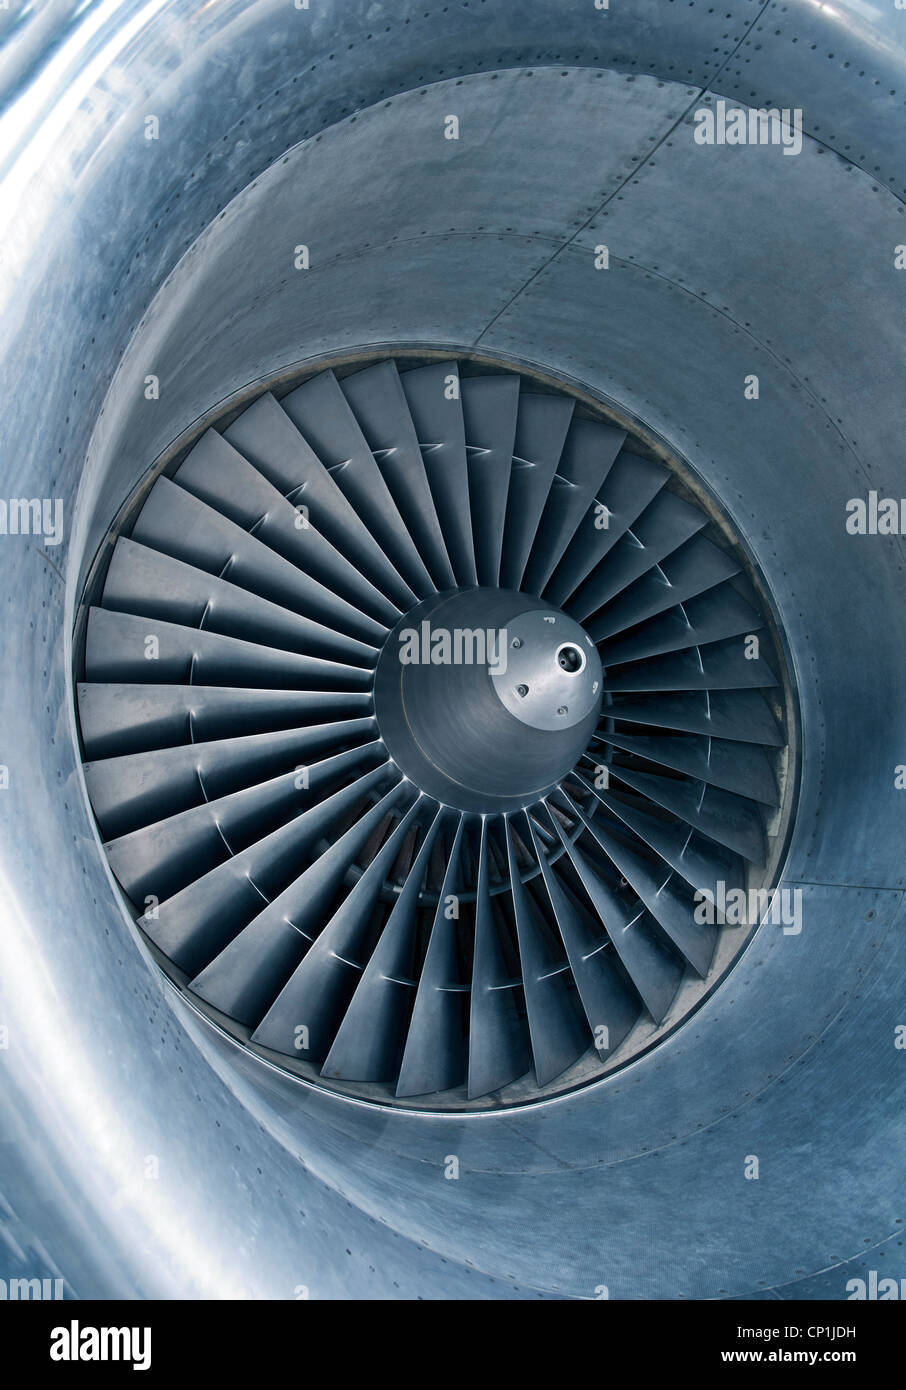 Detail of a jet turbine. - Stock Image